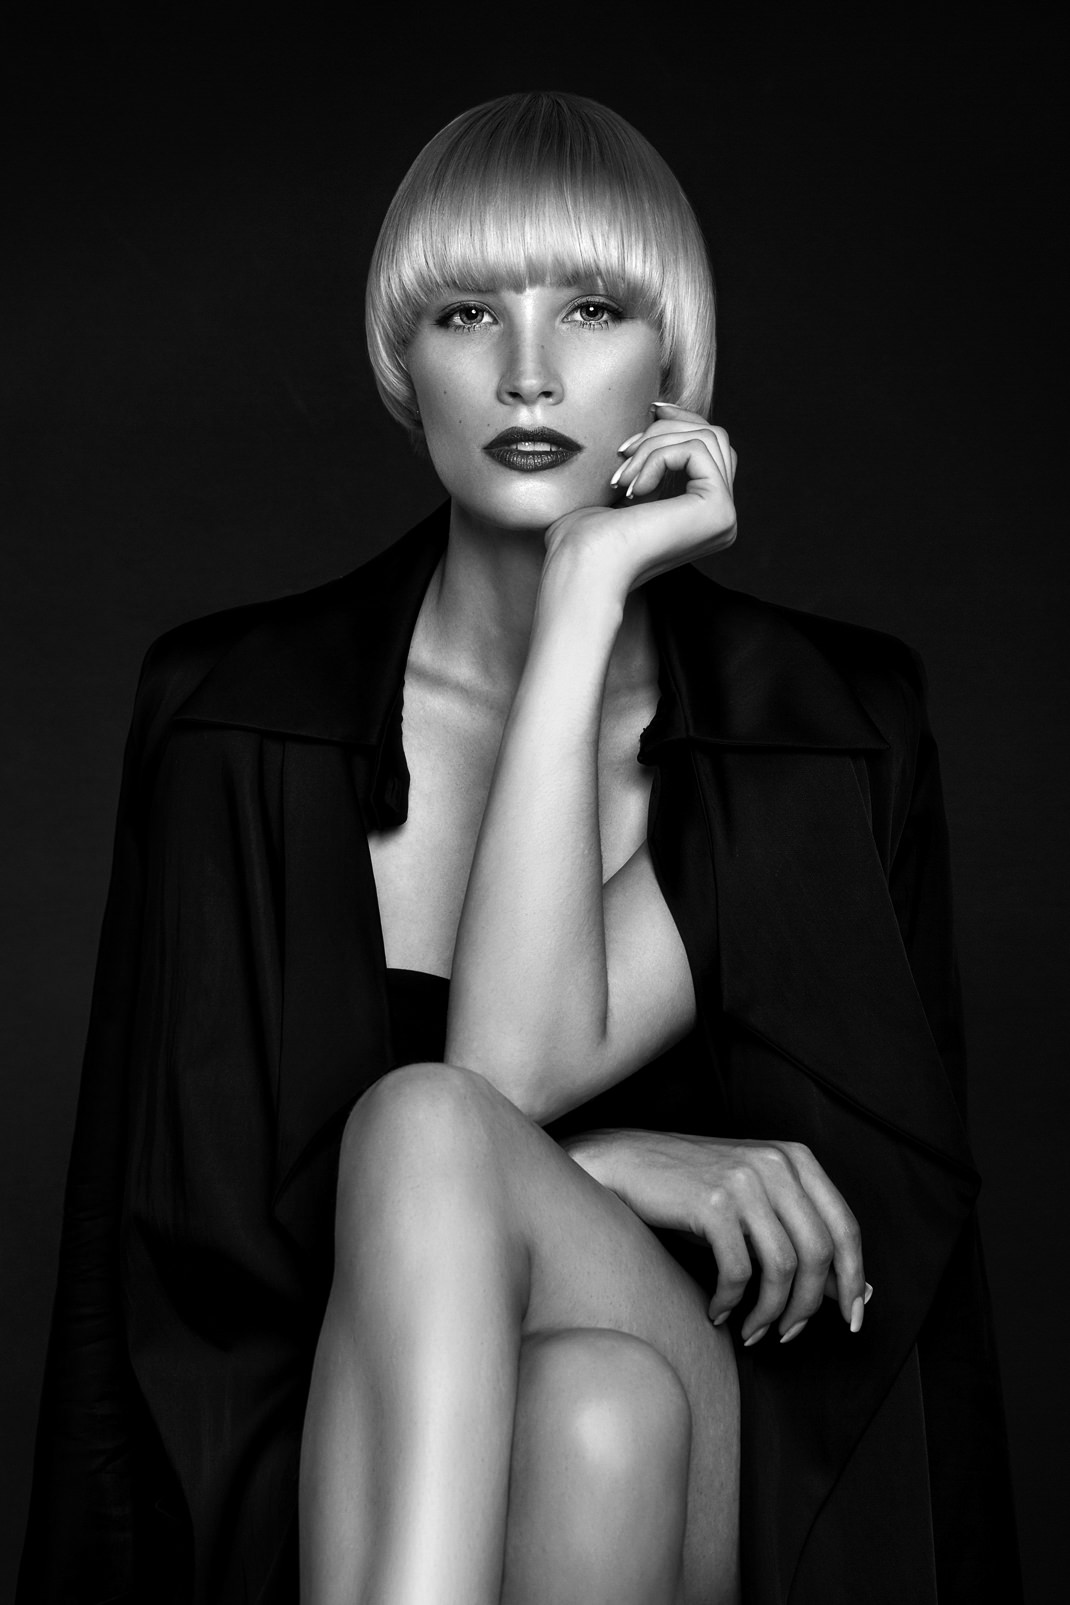 Portrait - Markus Hertzsch - B&W - Girl - Model - Bildlook - Face - Pose - Art - Hair - Eyes - Coat - Jane - Blonde